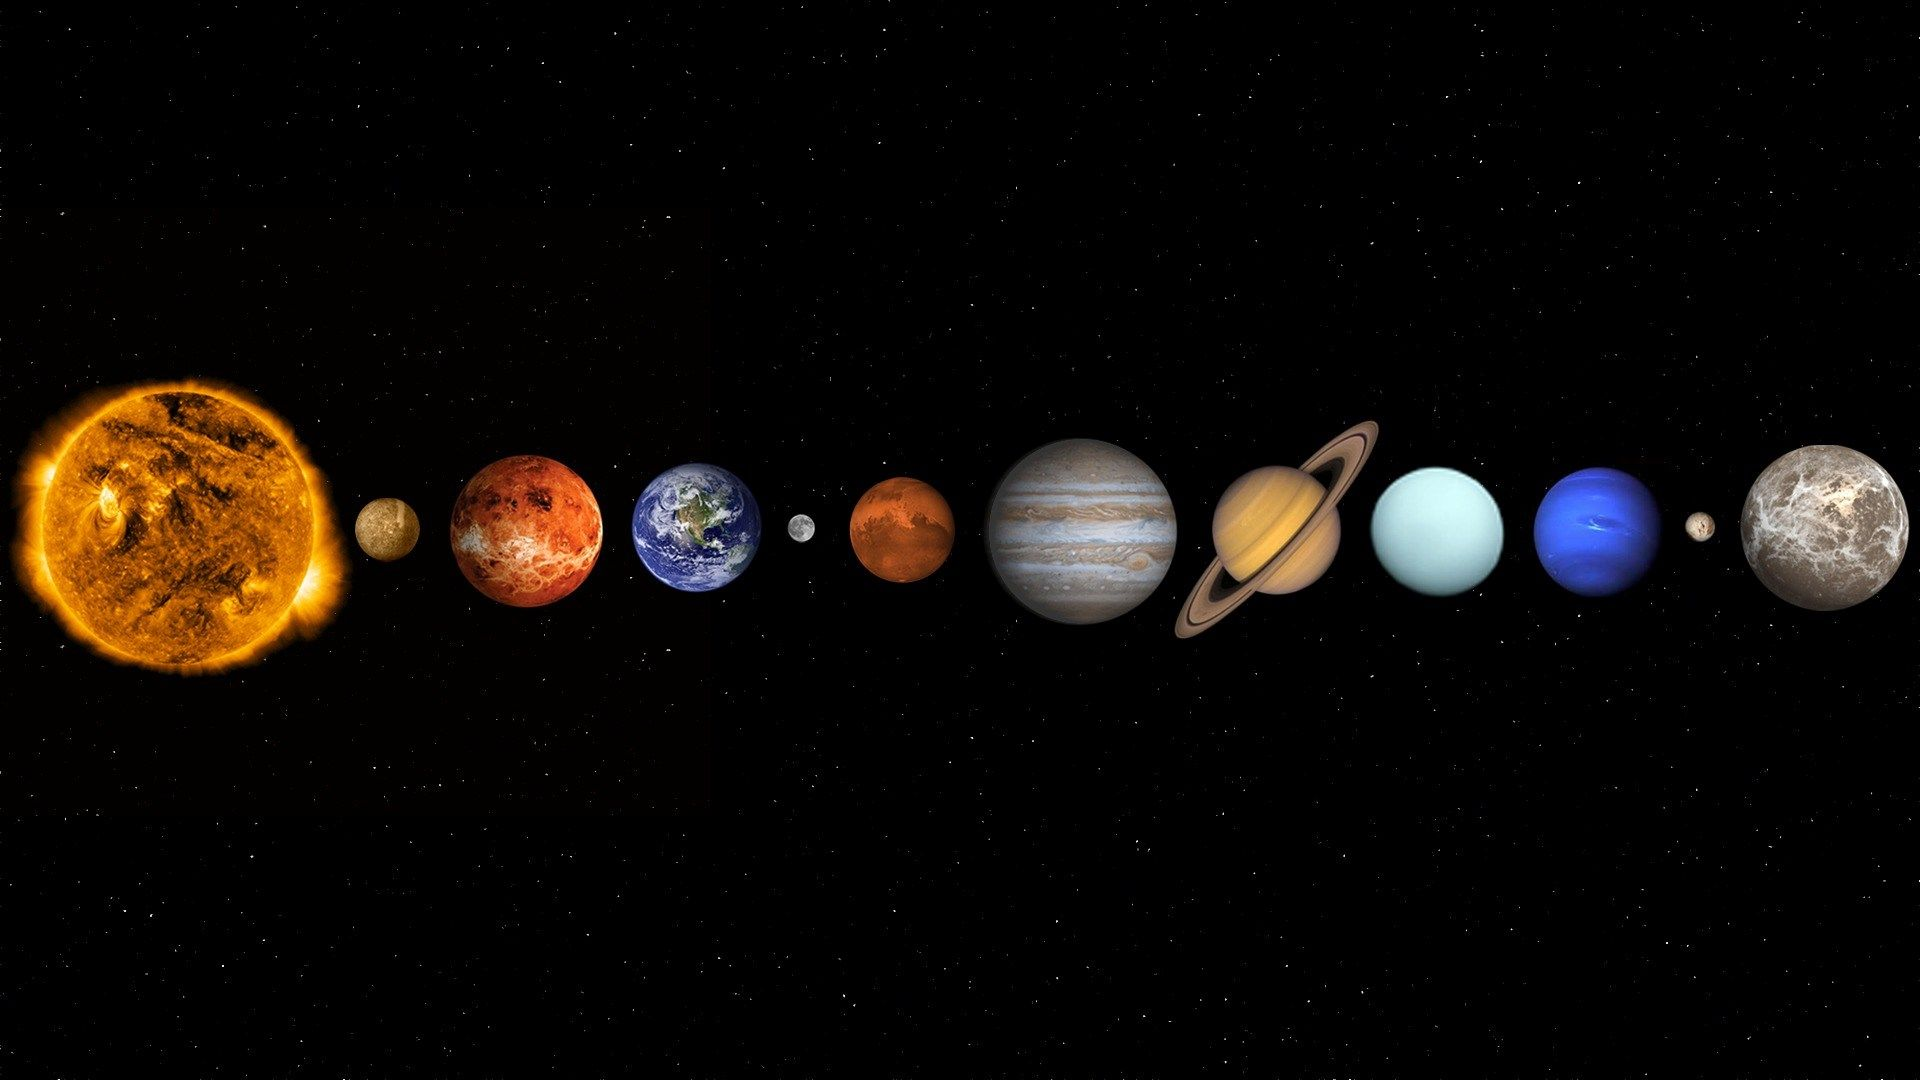 Solar system pic full hd wallpapers photos solar system solar system pic full hd wallpapers photos solar system category sciox Choice Image